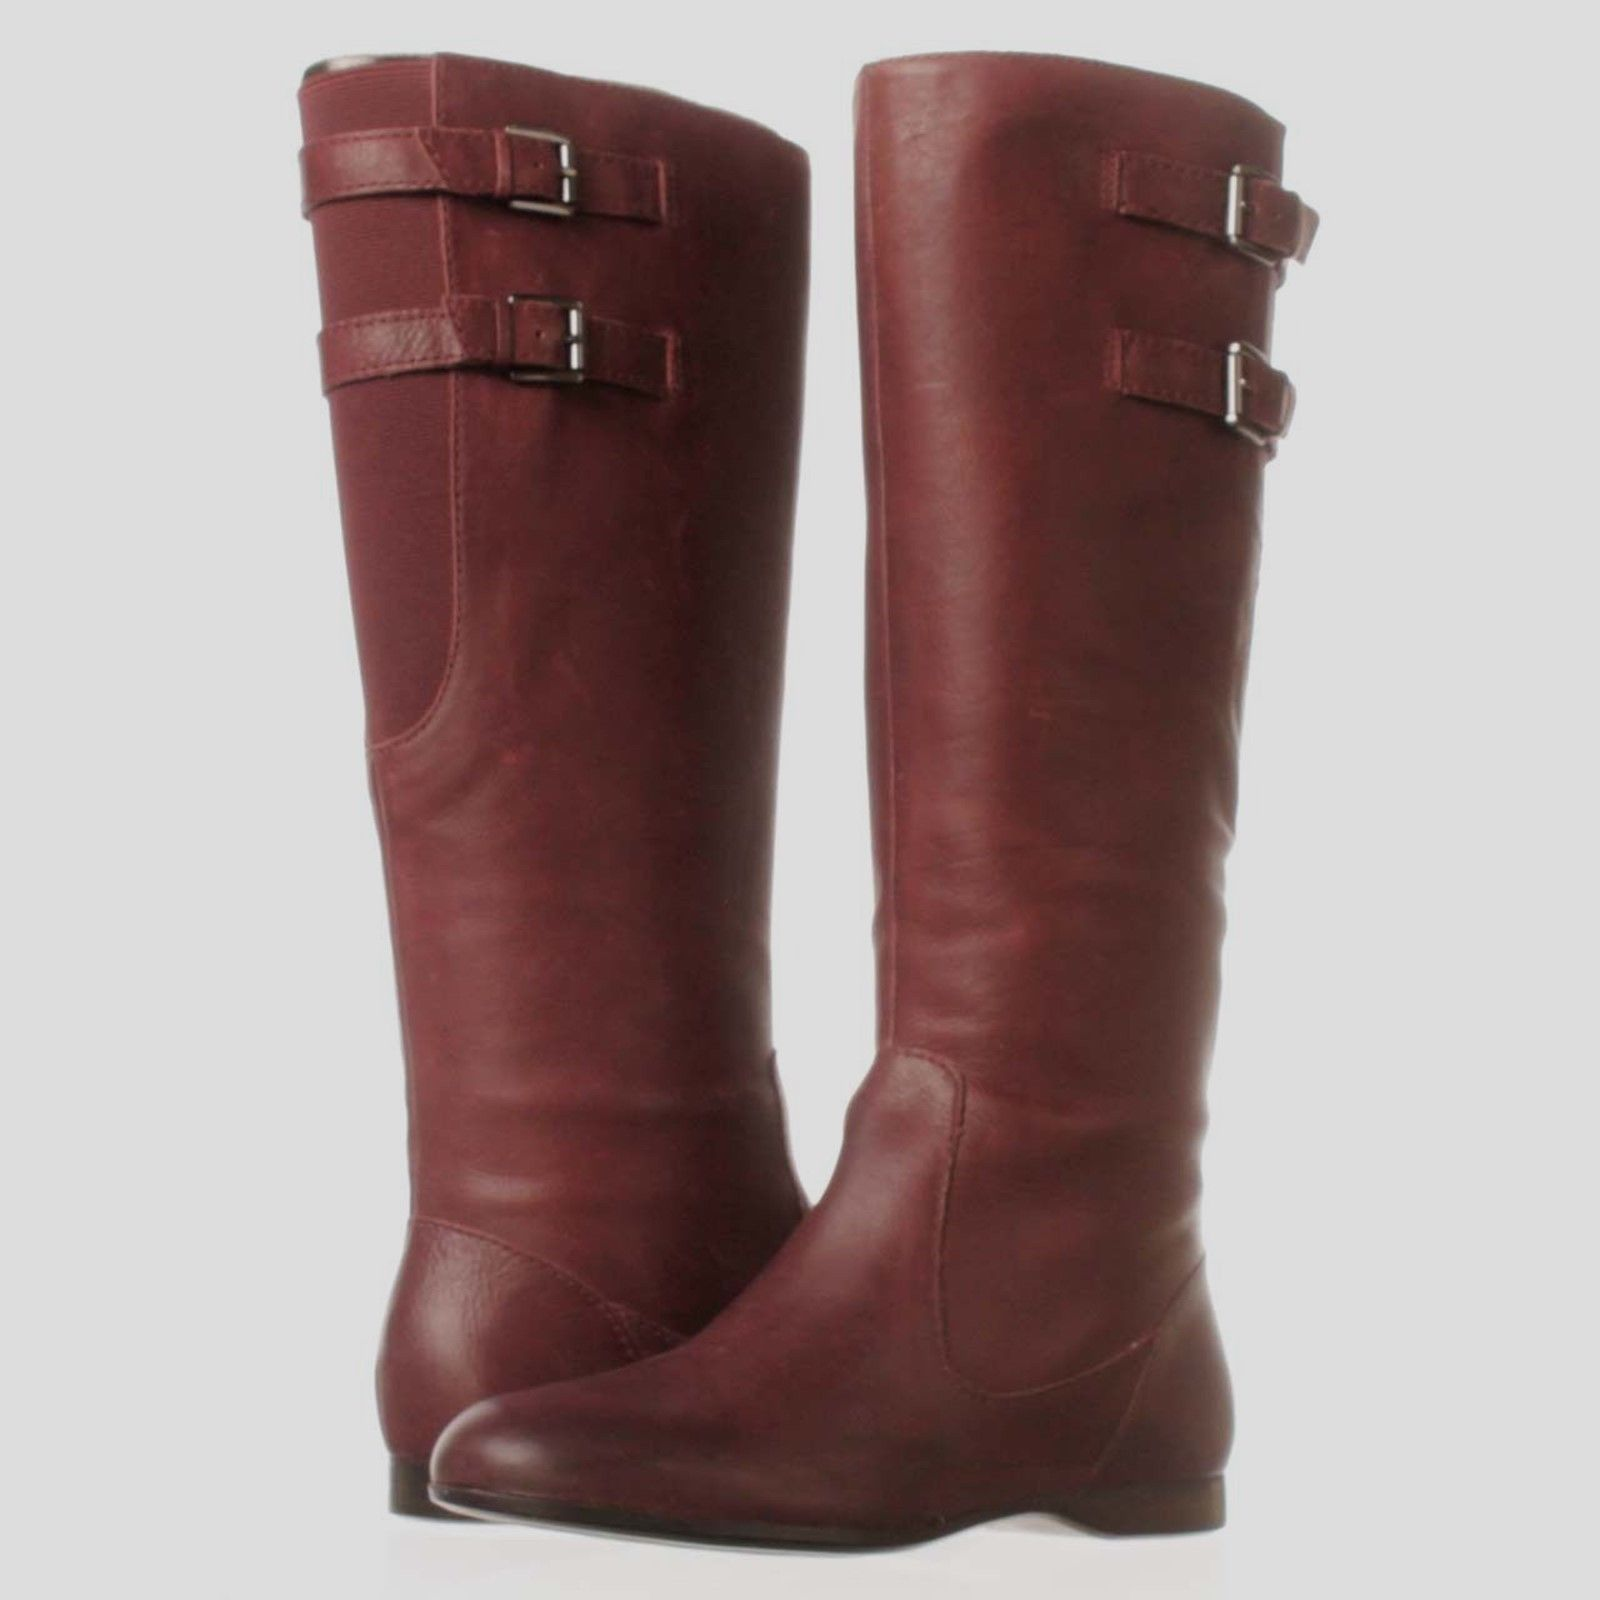 c94bd55117a8 S l1600. S l1600. Previous. Enzo Angiolini Zarynn NEW Tall Burgundy Leather  Riding Boots Size 6B